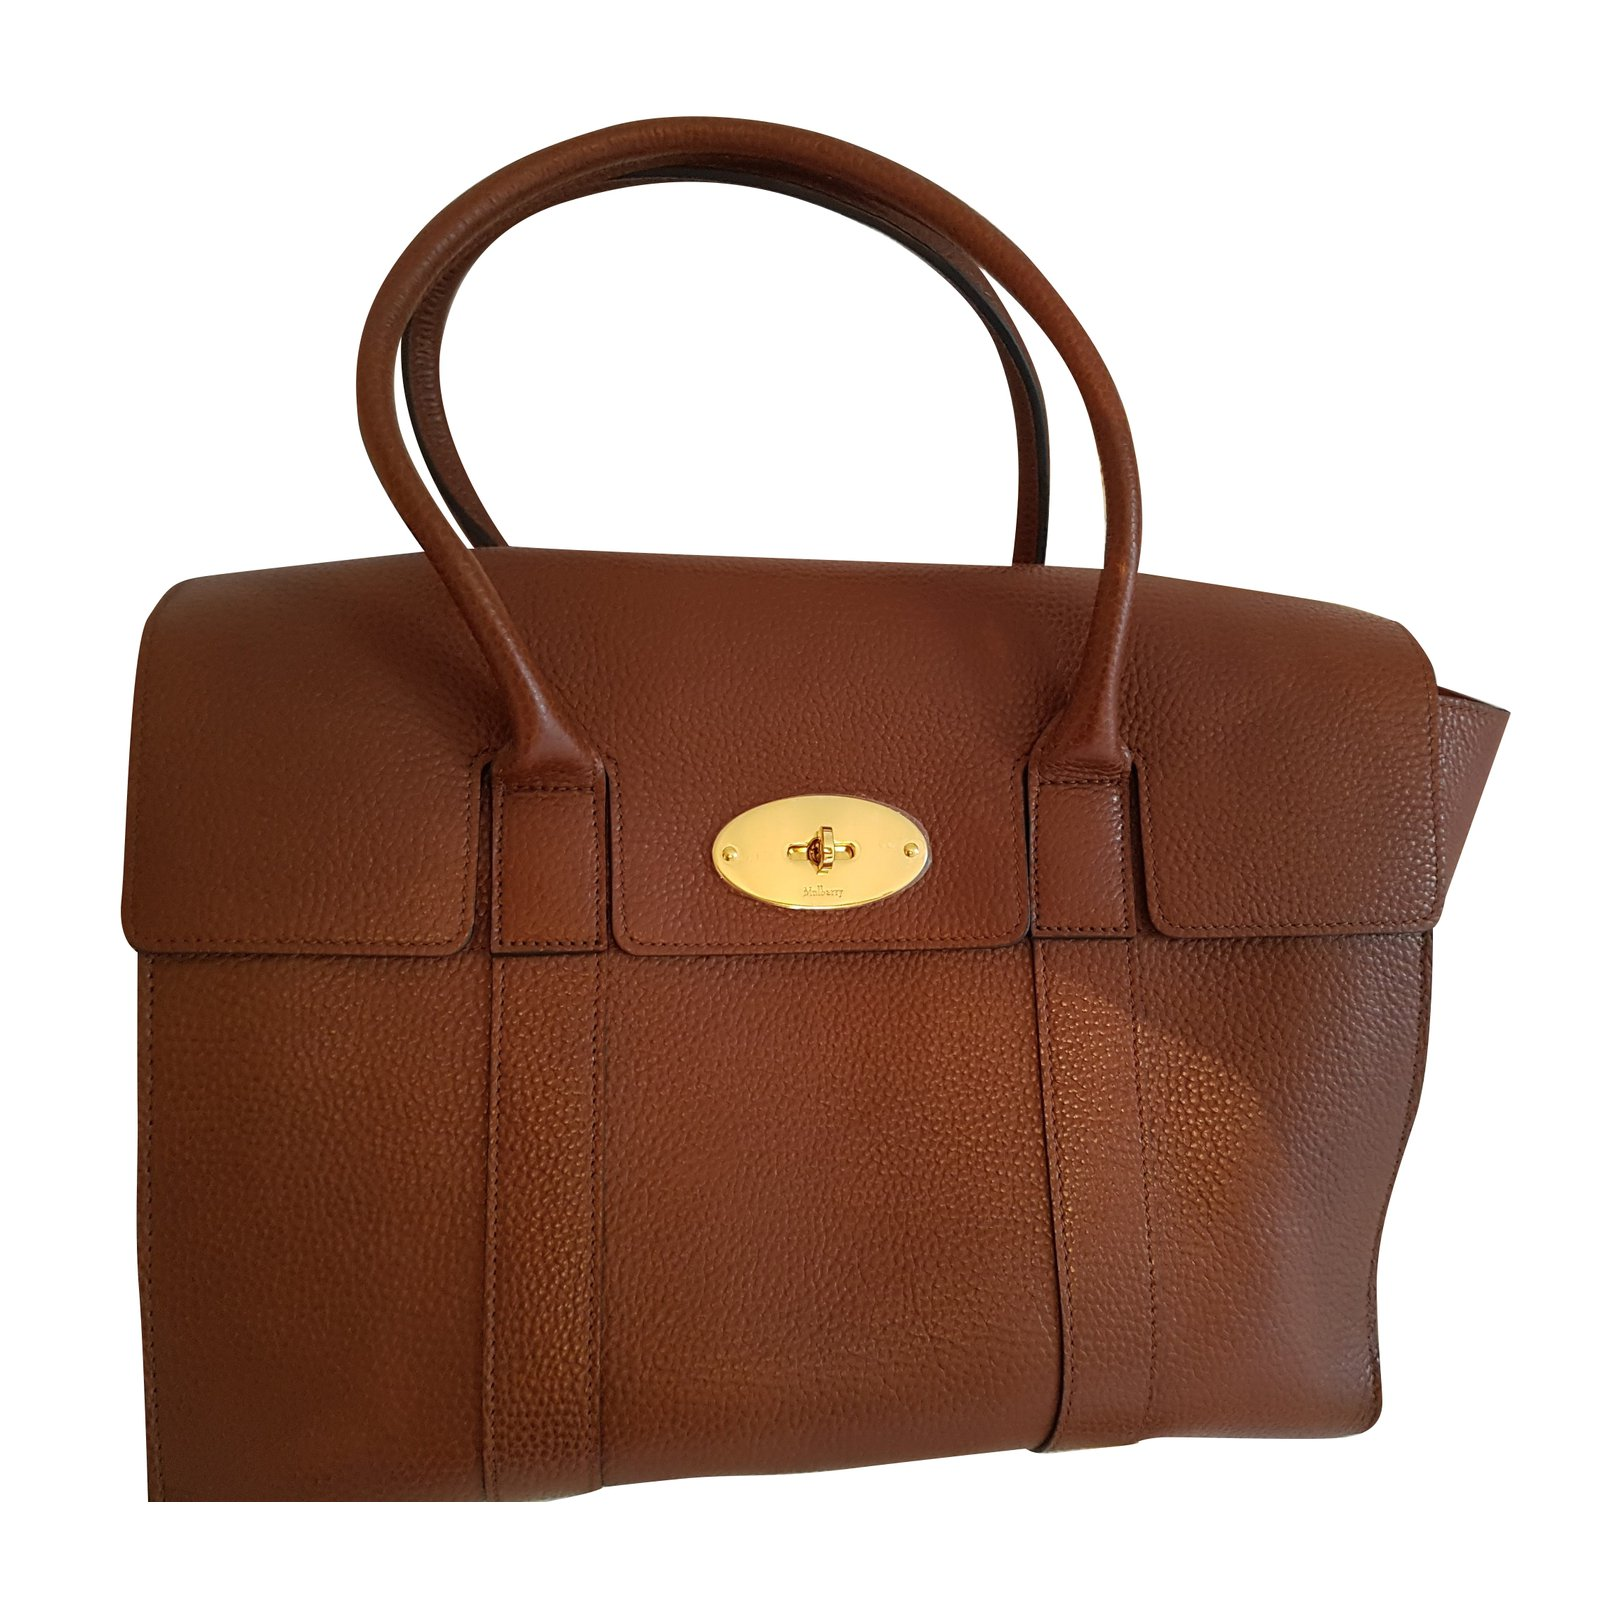 56861bb7d3 Mulberry Bayswater Handbags Leather Brown ref.50187 - Joli Closet